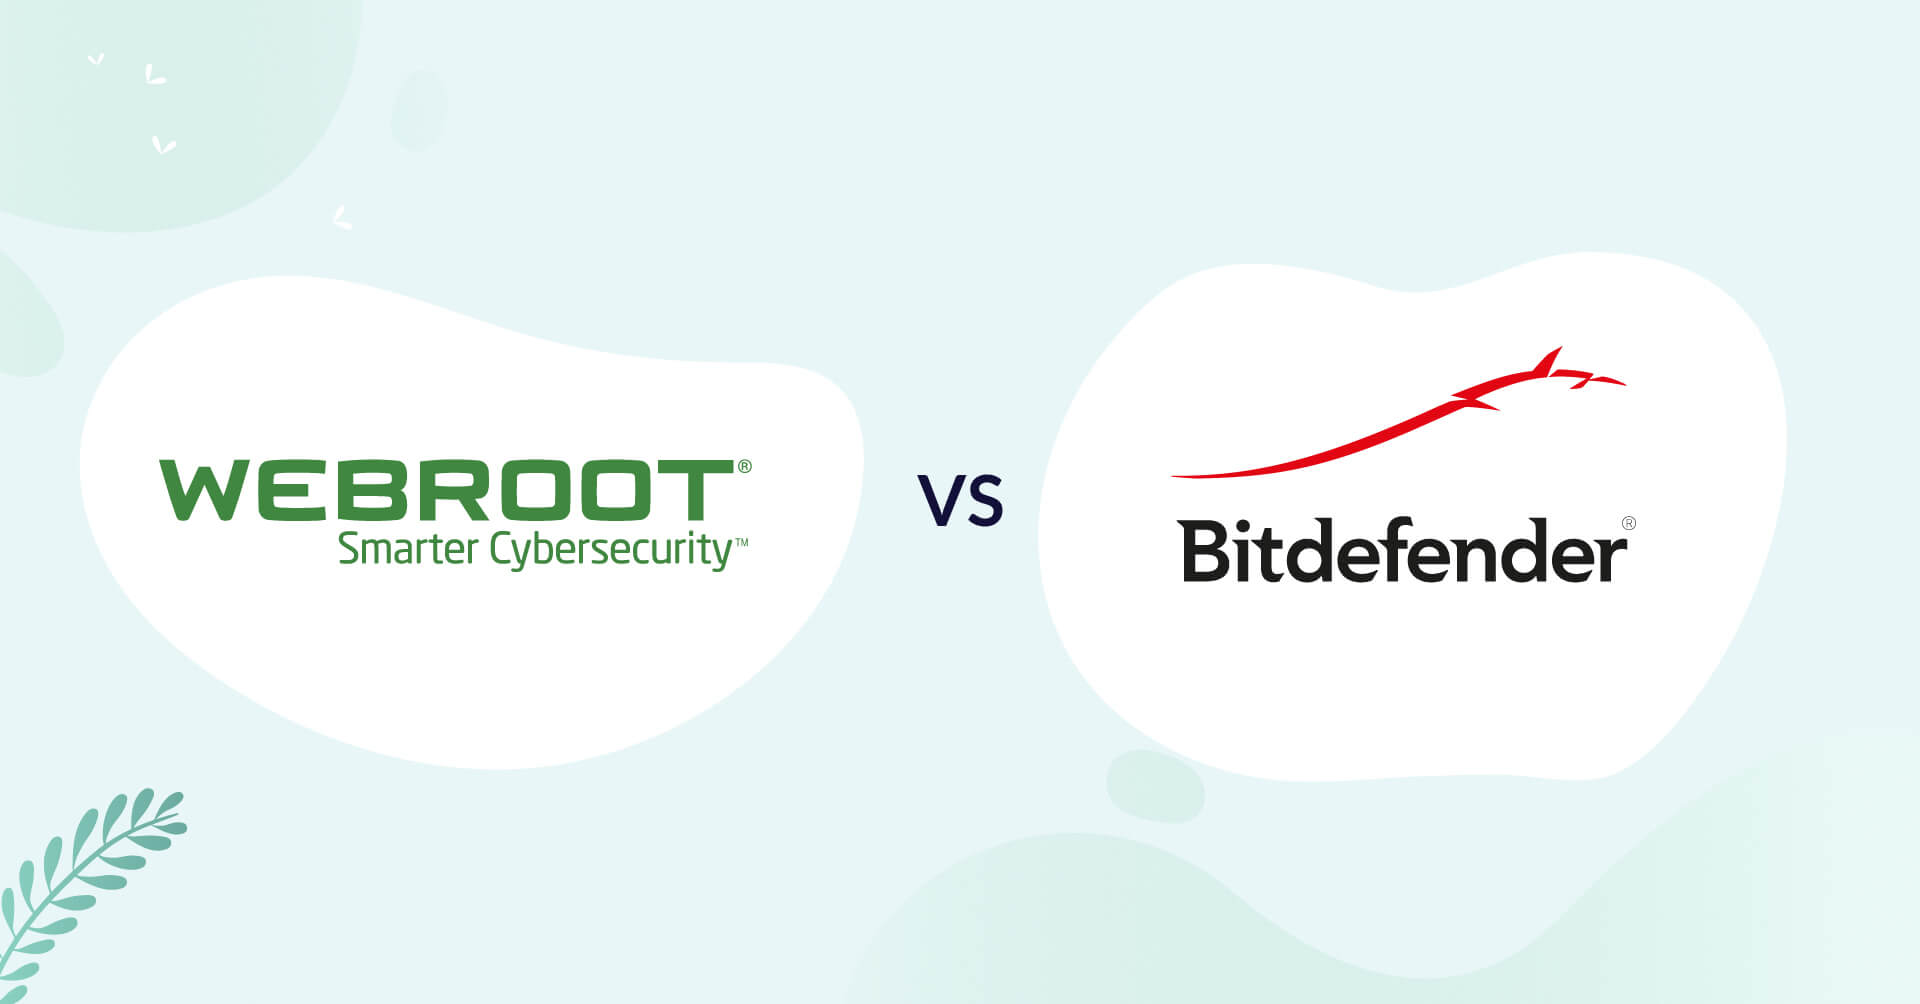 webroot logo vs bitdefender logo antivirus comparison header for how to choose article